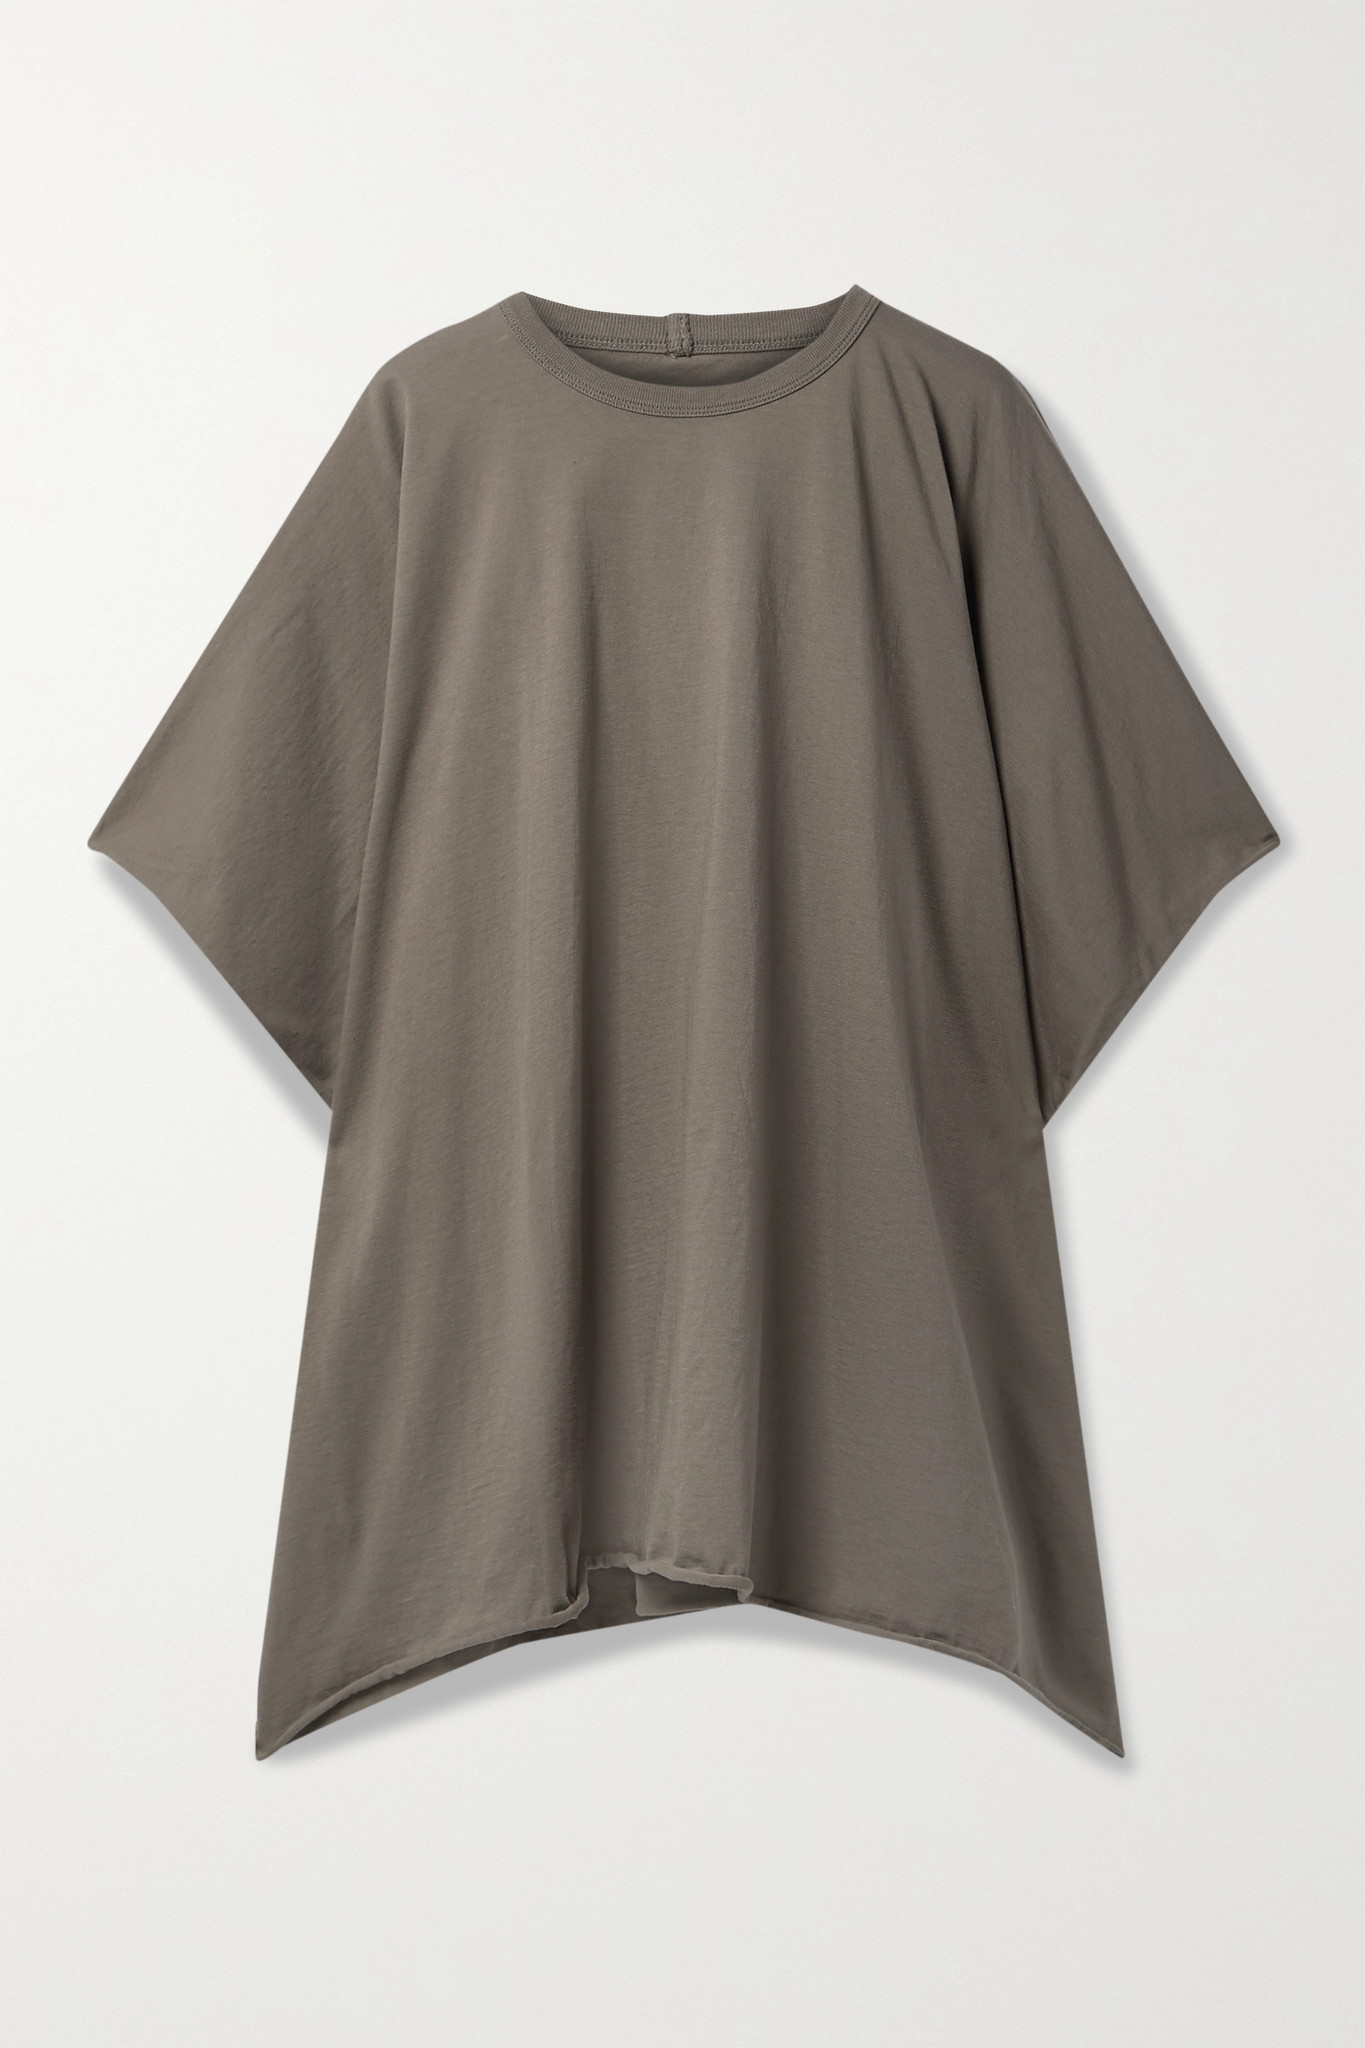 RICK OWENS - Minerva Cotton-jersey T-shirt - Brown - IT42